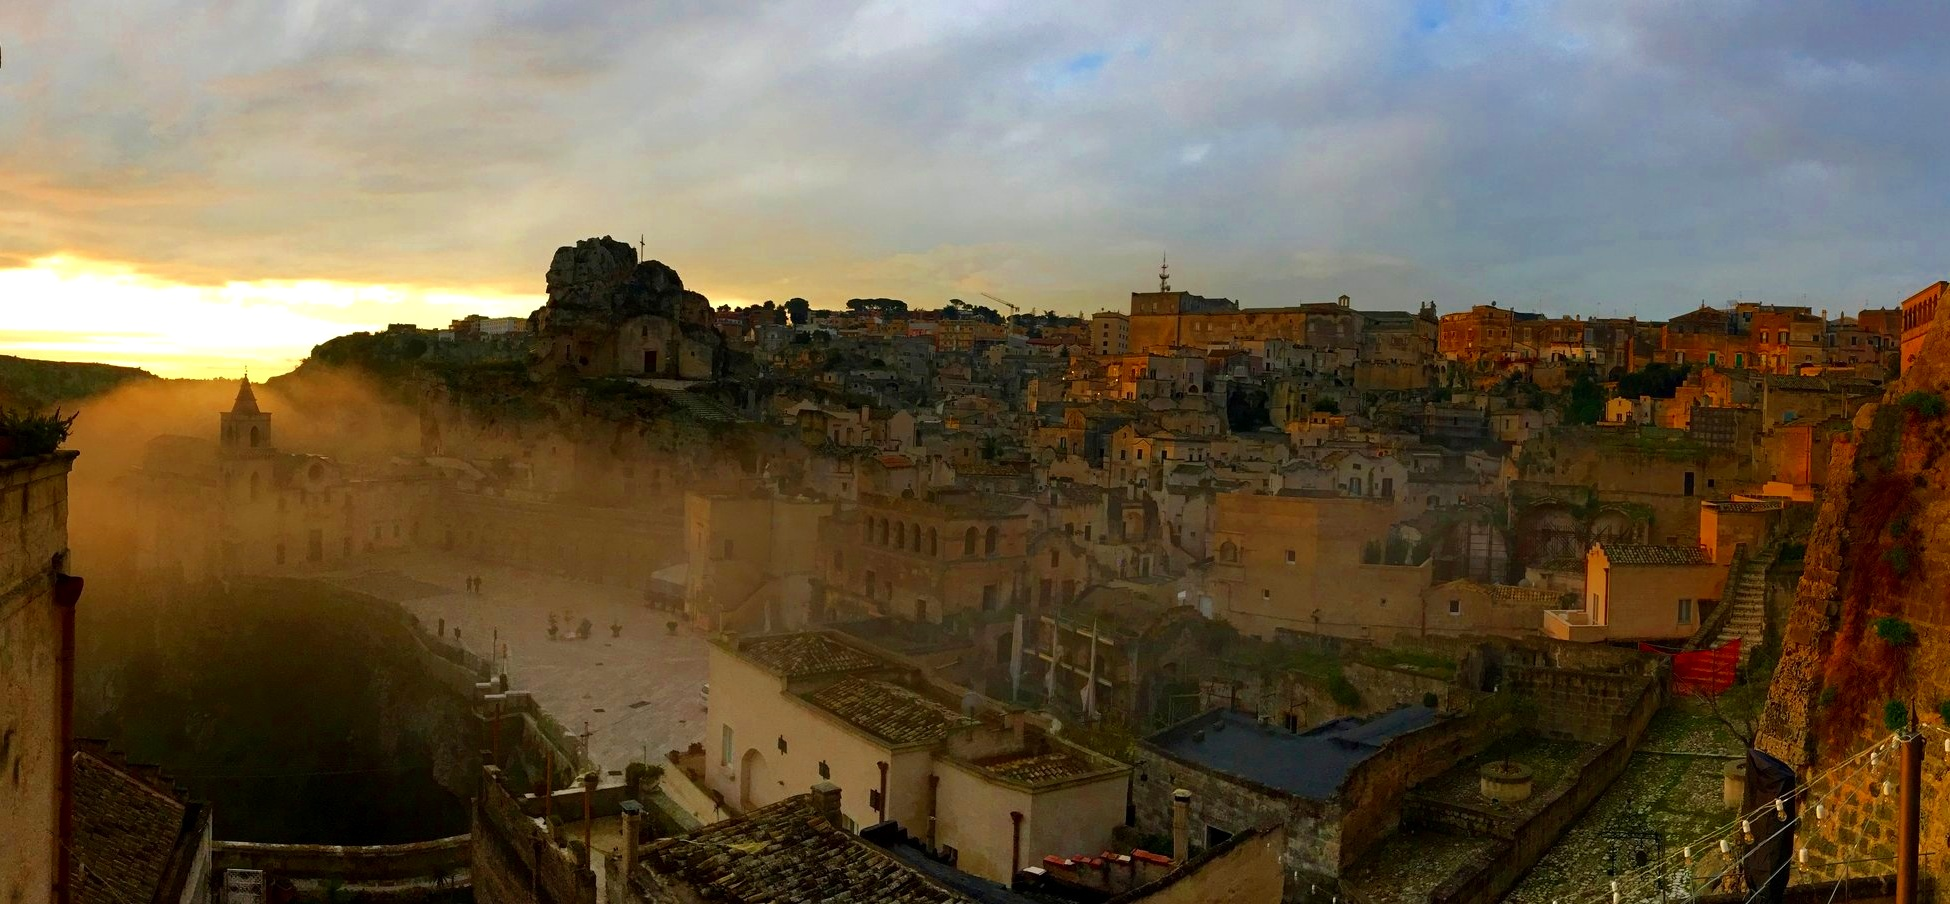 Sweet shelter of the mother's arms, the marvel of all Arts - Unesco World Heritage Site of Matera